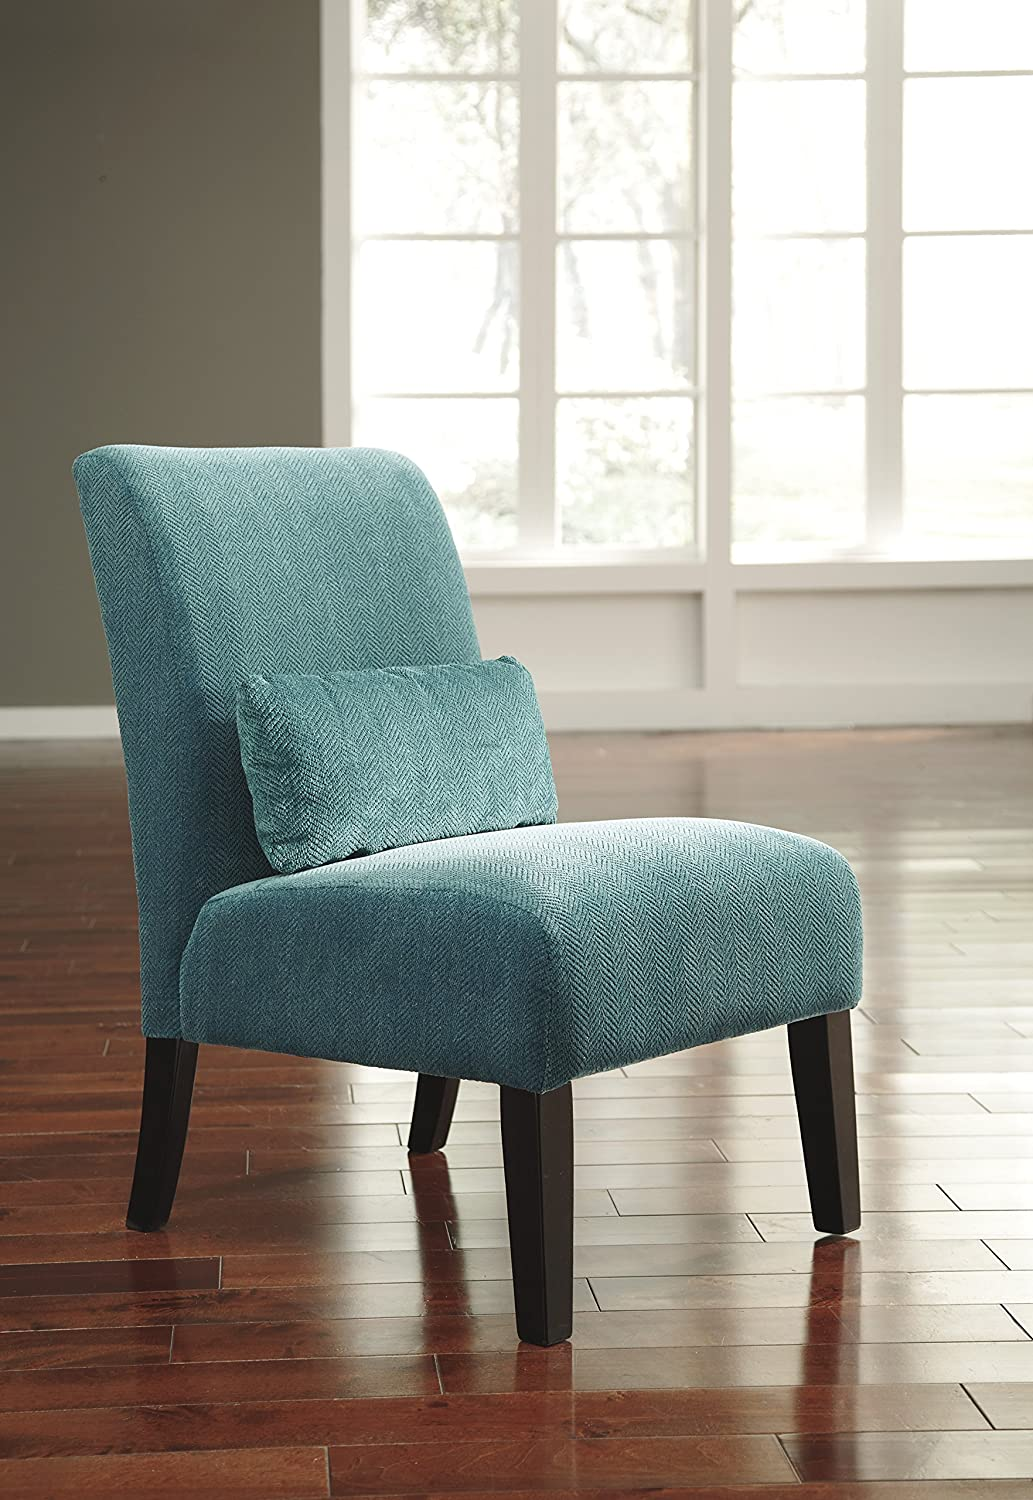 Perfect Amazon.com: Anora Fabric Armless Contemporary Accent Chair; Teal: Kitchen U0026  Dining